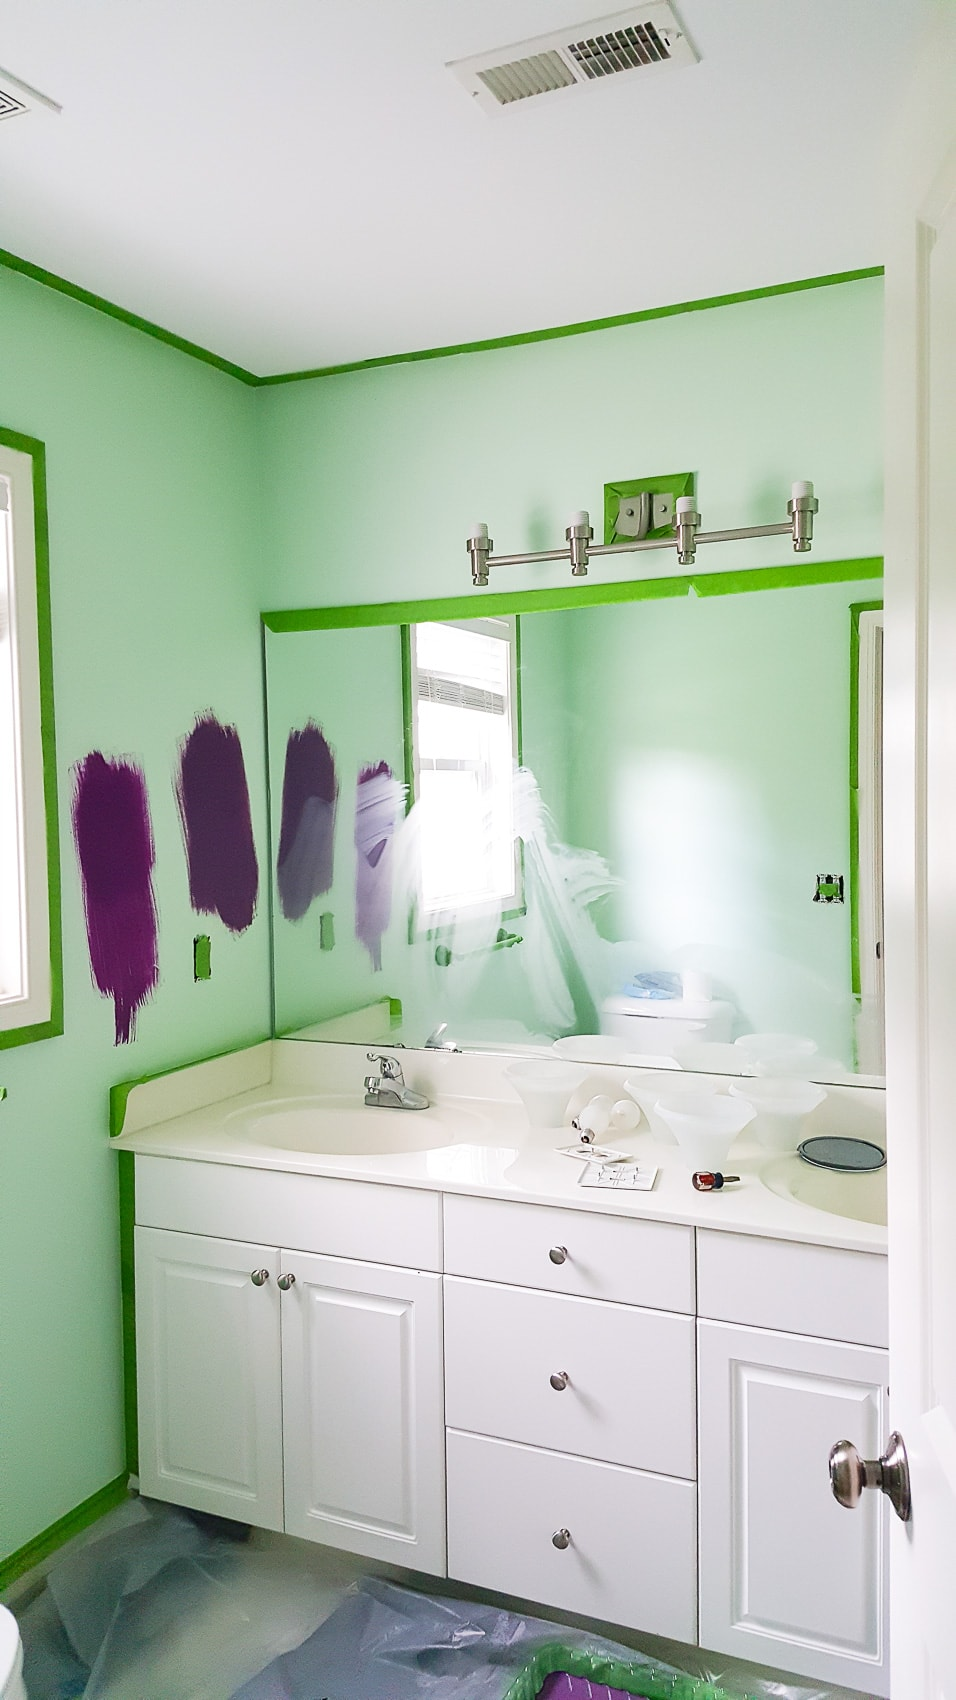 Prepare a room before painting